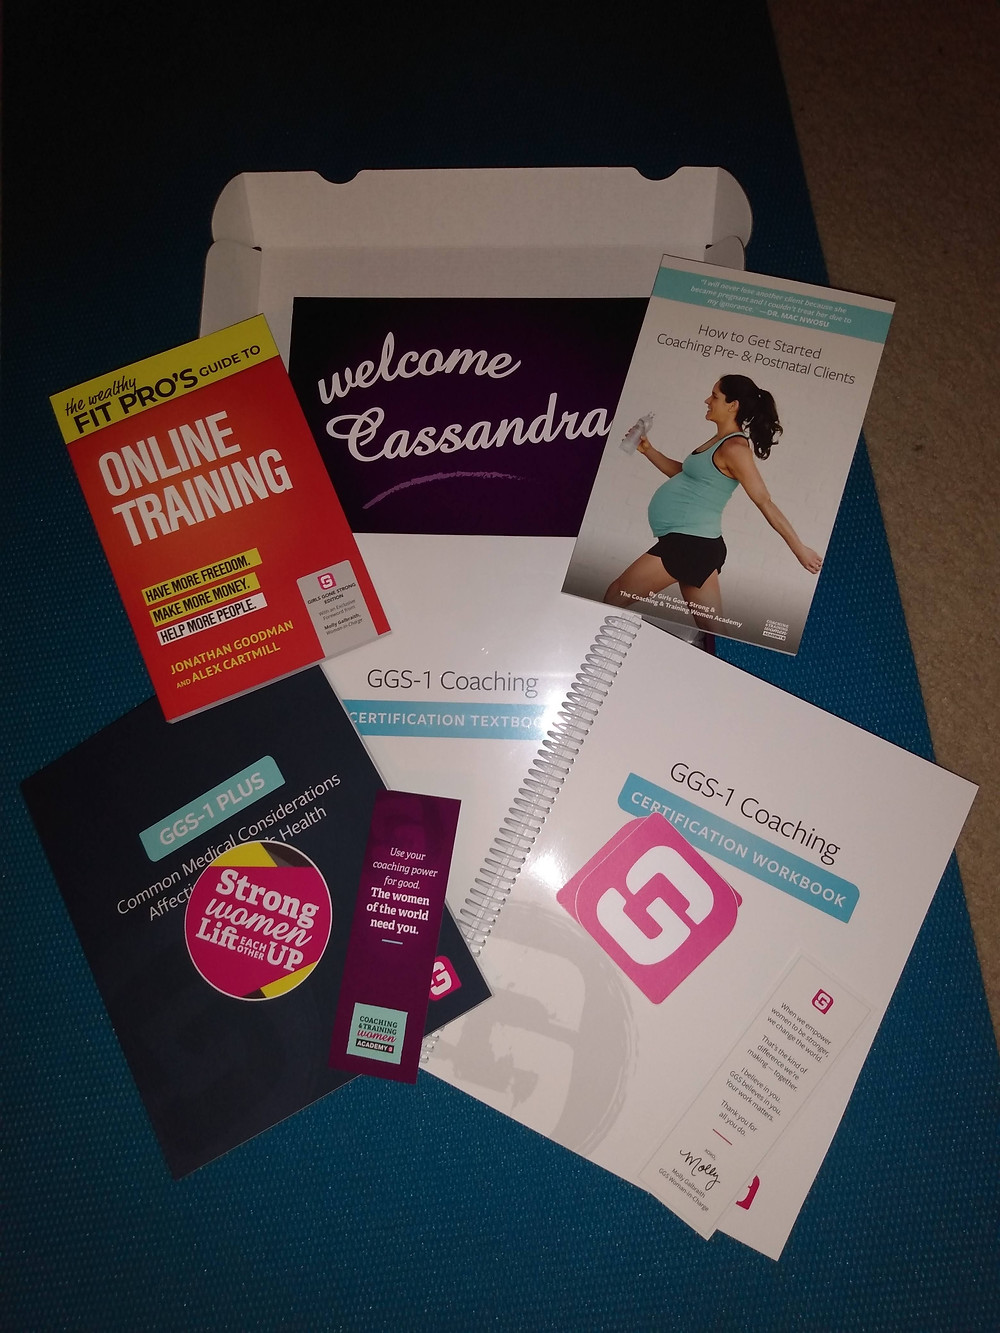 GGS-1 Women's Coaching Specialist Certification materials